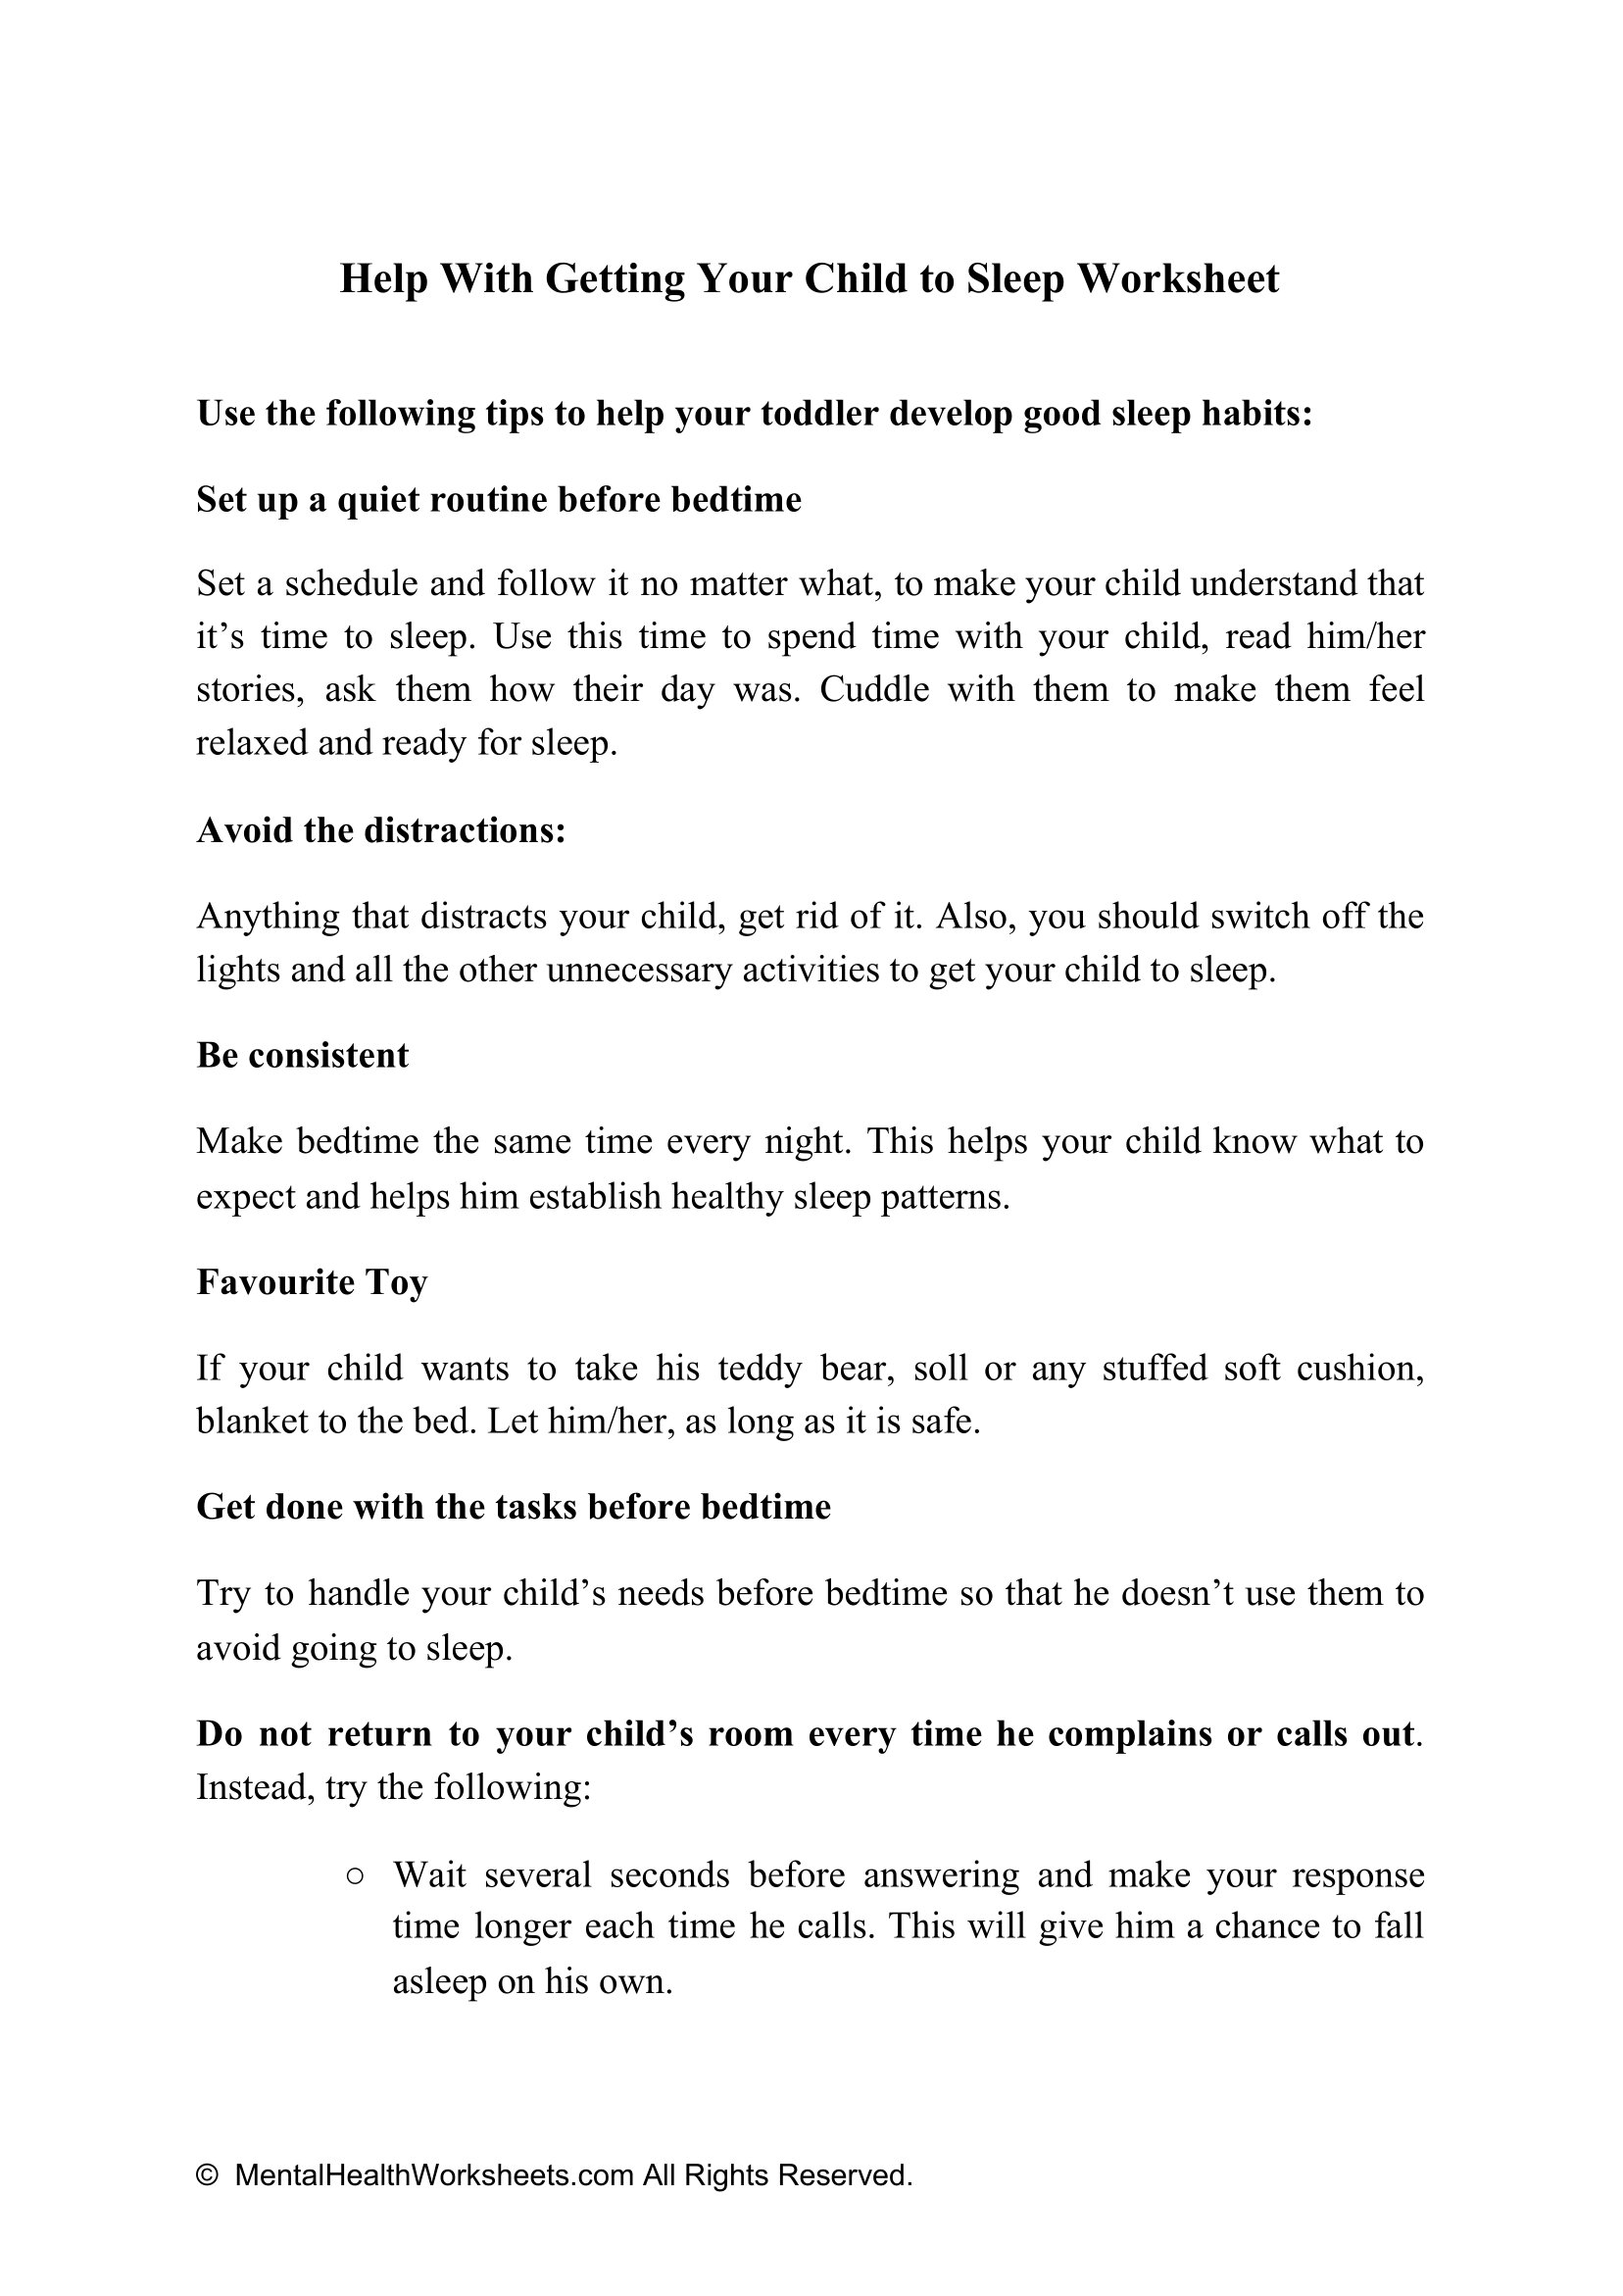 Help With Getting Your Child To Sleep Worksheet